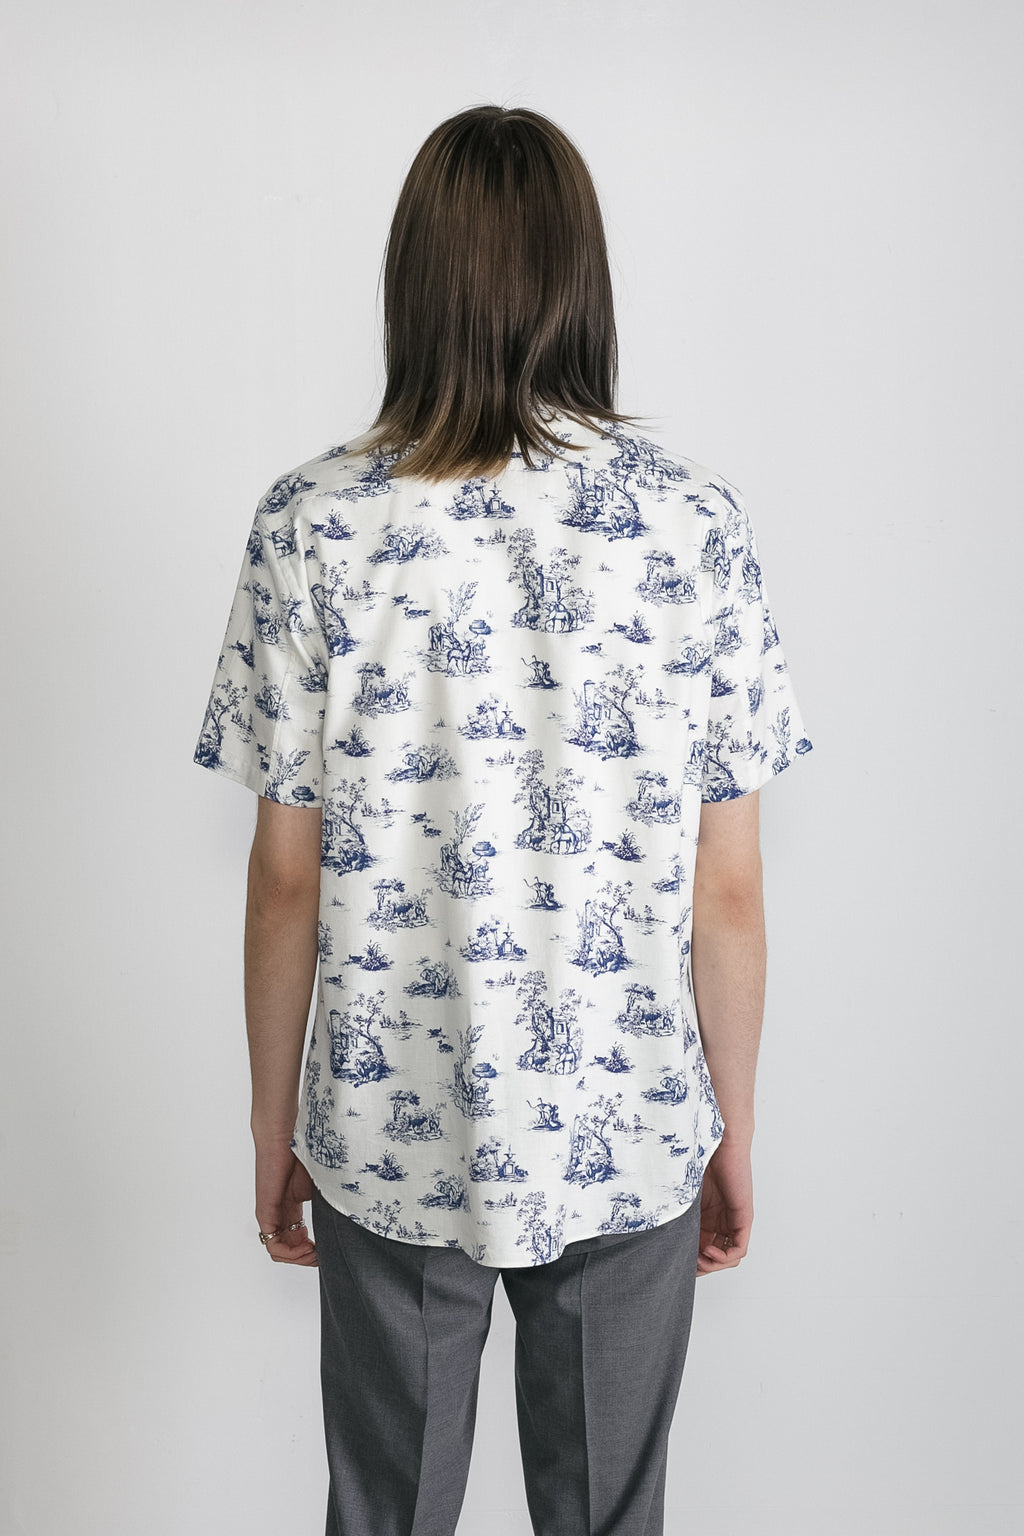 Japanese Safari Print in White and Blue 04